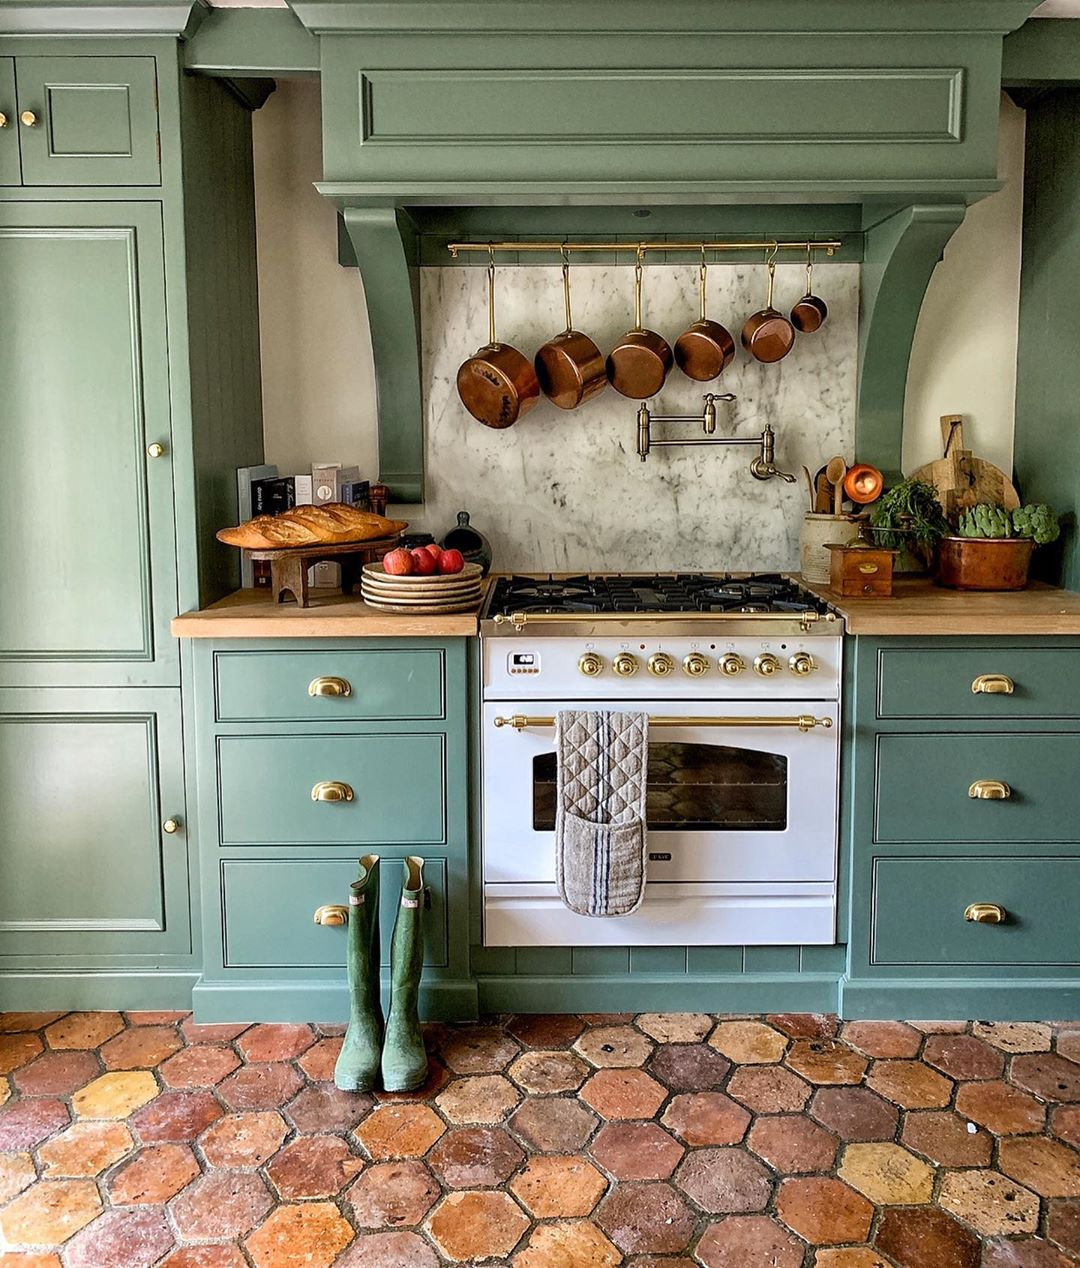 Farrow-and-Ball-Smoke-Green-painted-kitchen-cabinets-2020 ...